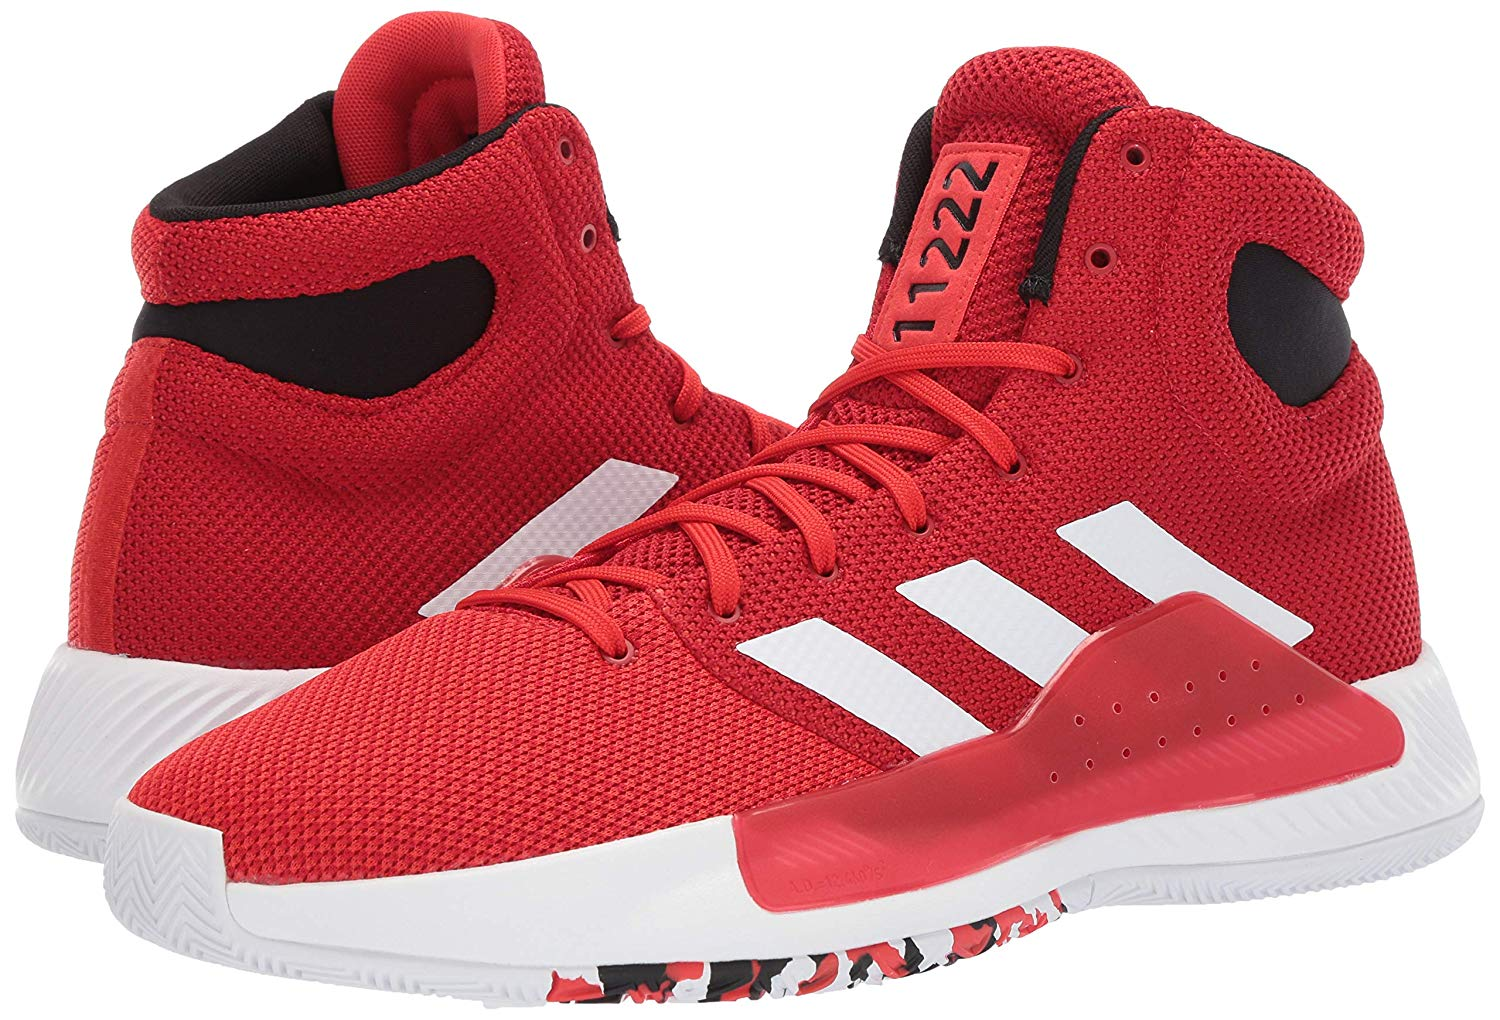 The adidas Pro Bounce Madness 2019 Is Now Available